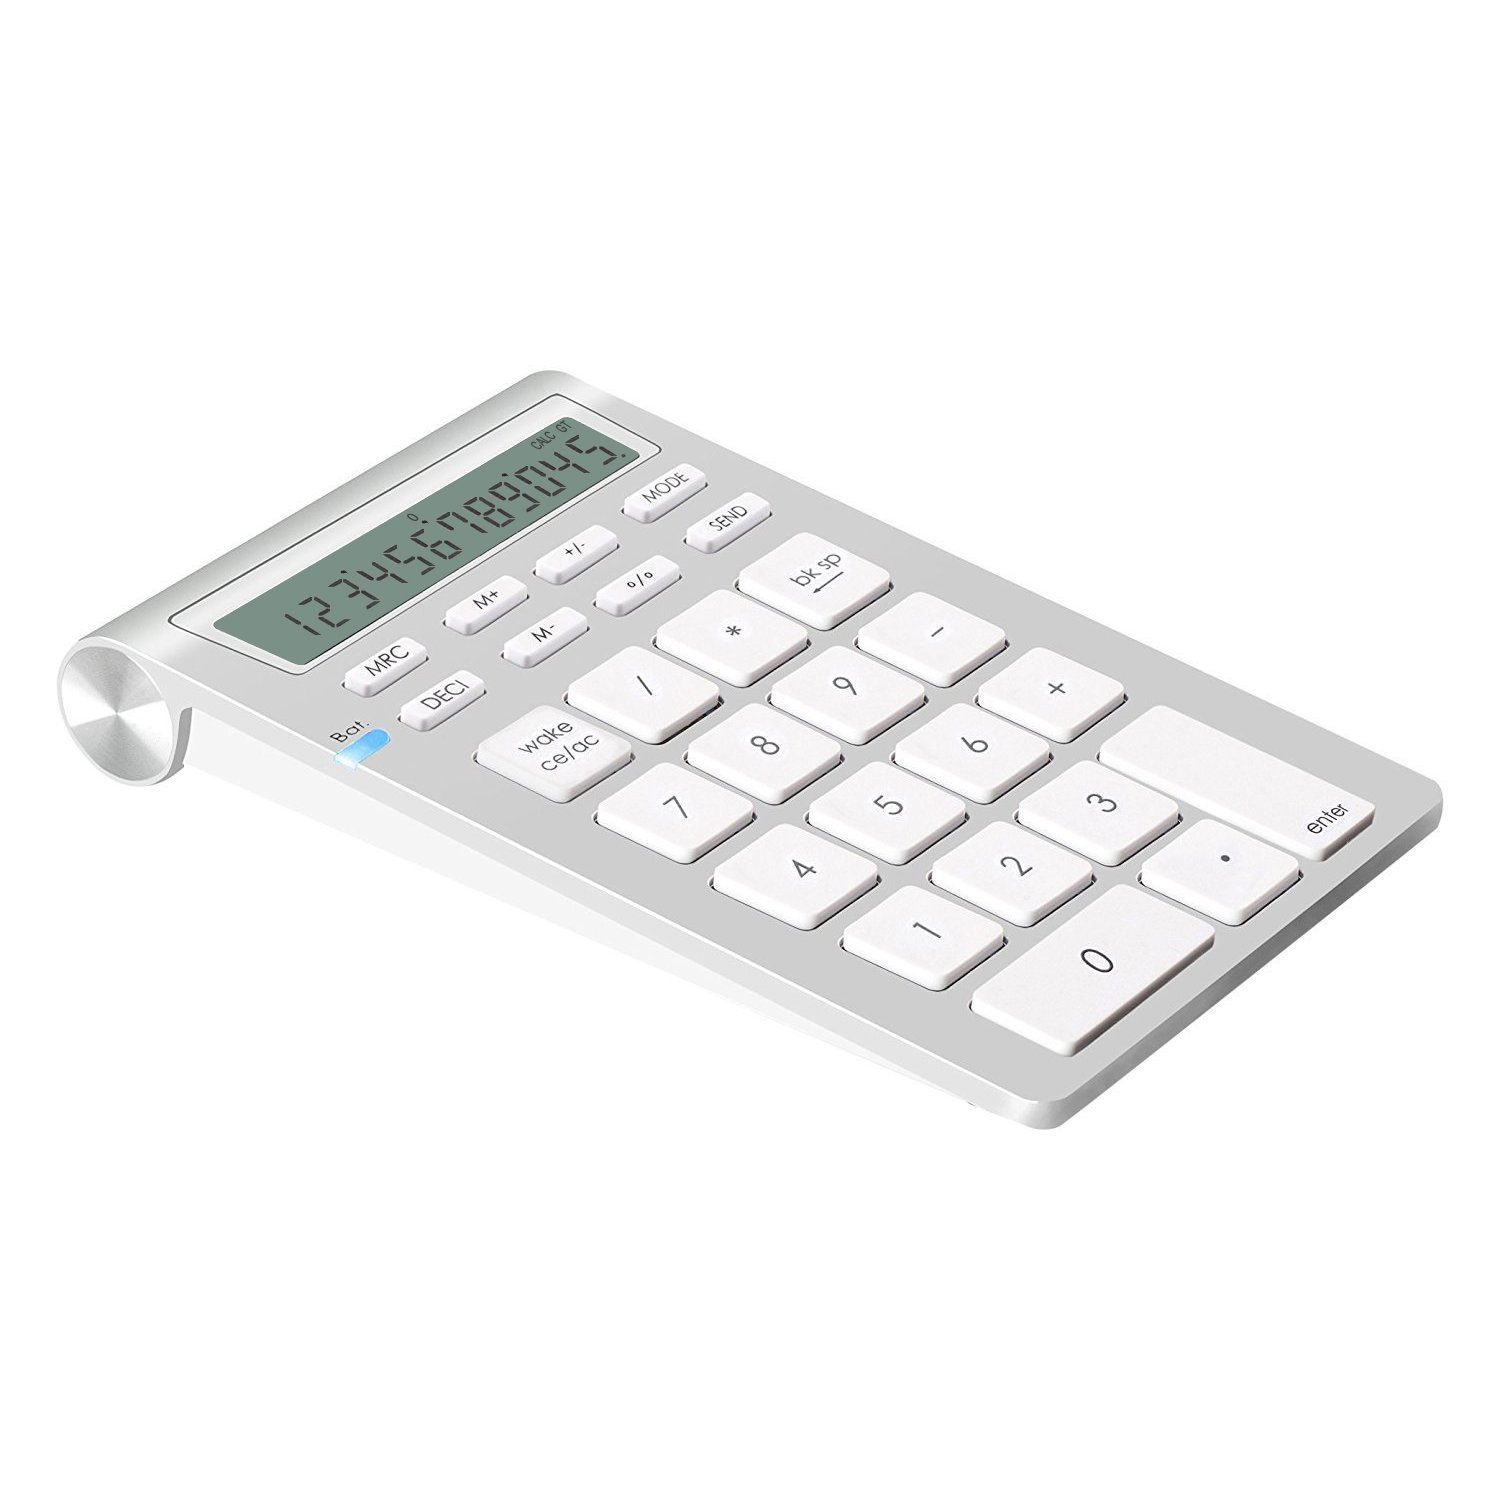 Alcey Wireless Bluetooth Numeric Keypad with Calculator Function for iMac, MacBooks,PCs and Laptops{Upgraded Version}